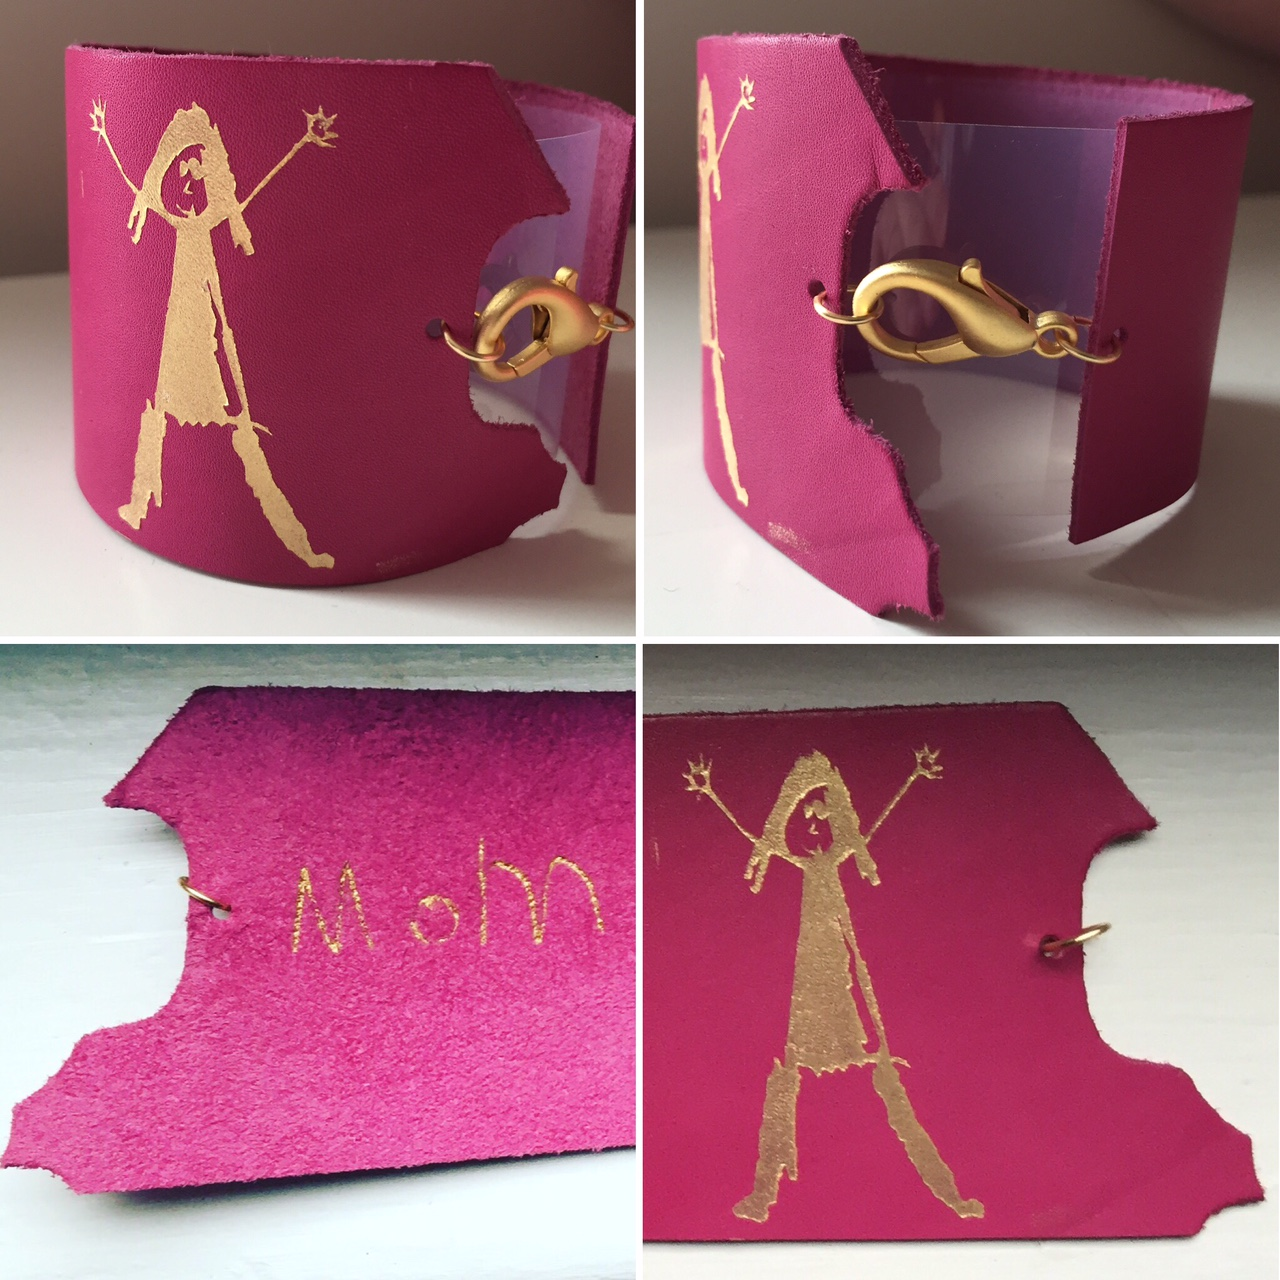 Stencil   Stenciling can create crisp,clean lines, shapes, and outlines. All types of leather can be stenciled.